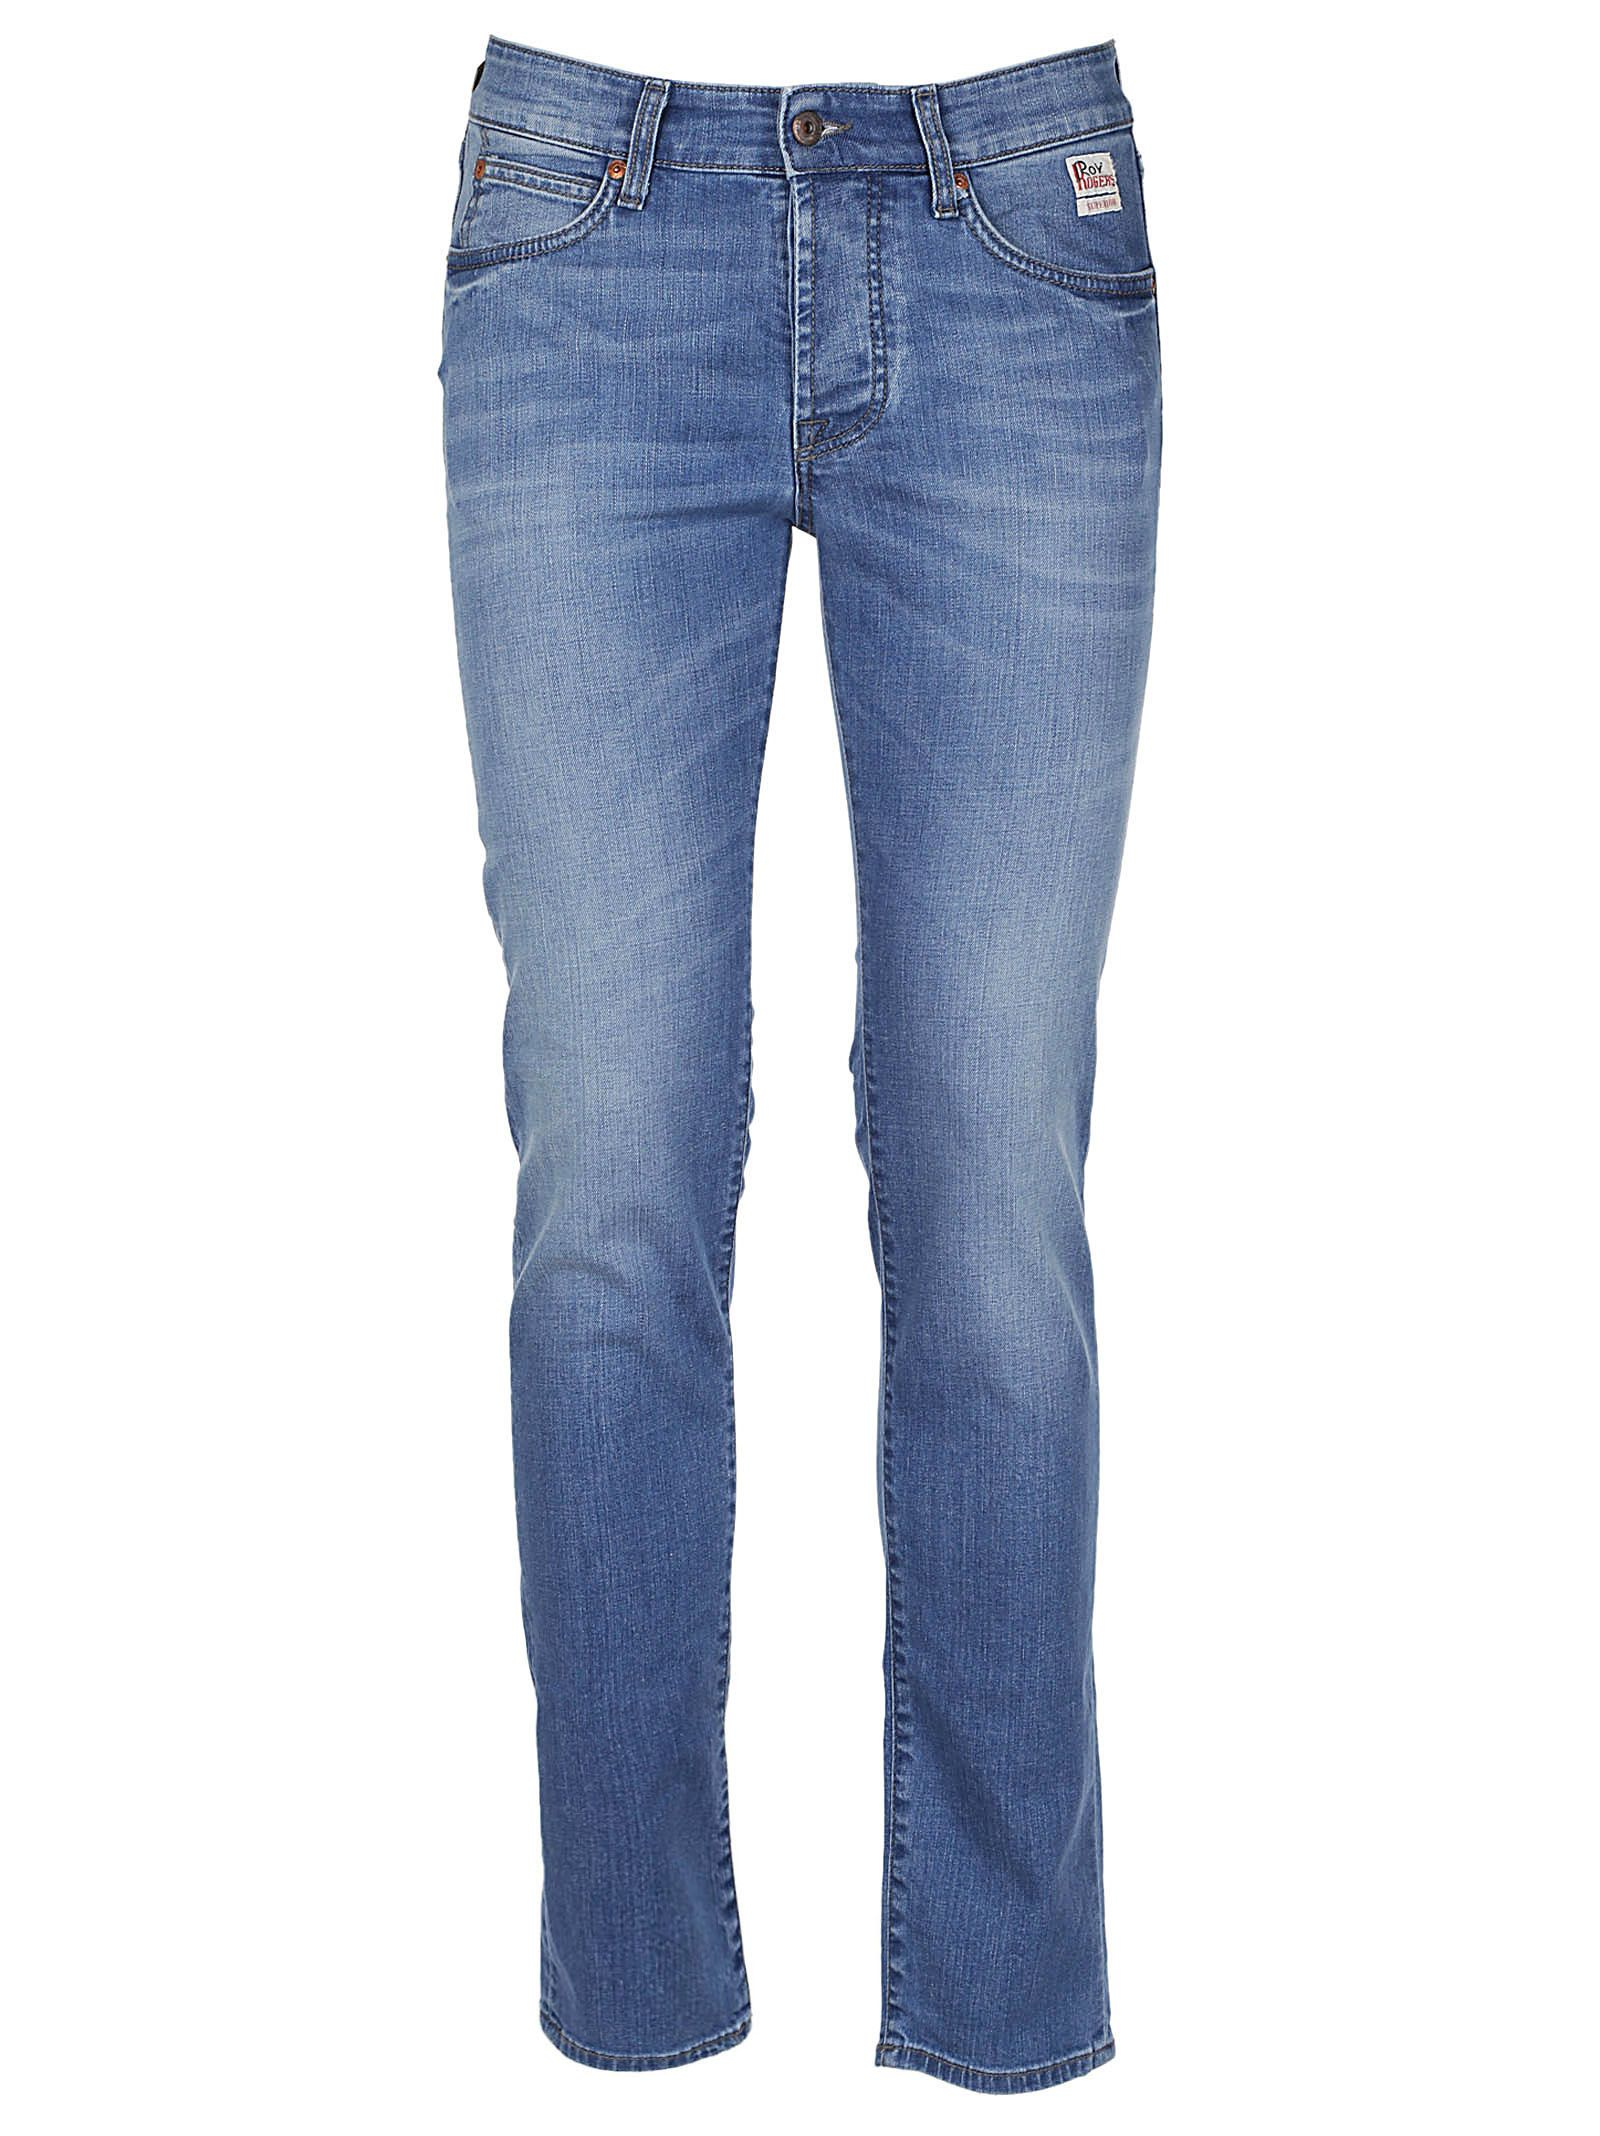 Roy Roger's Classic Jeans